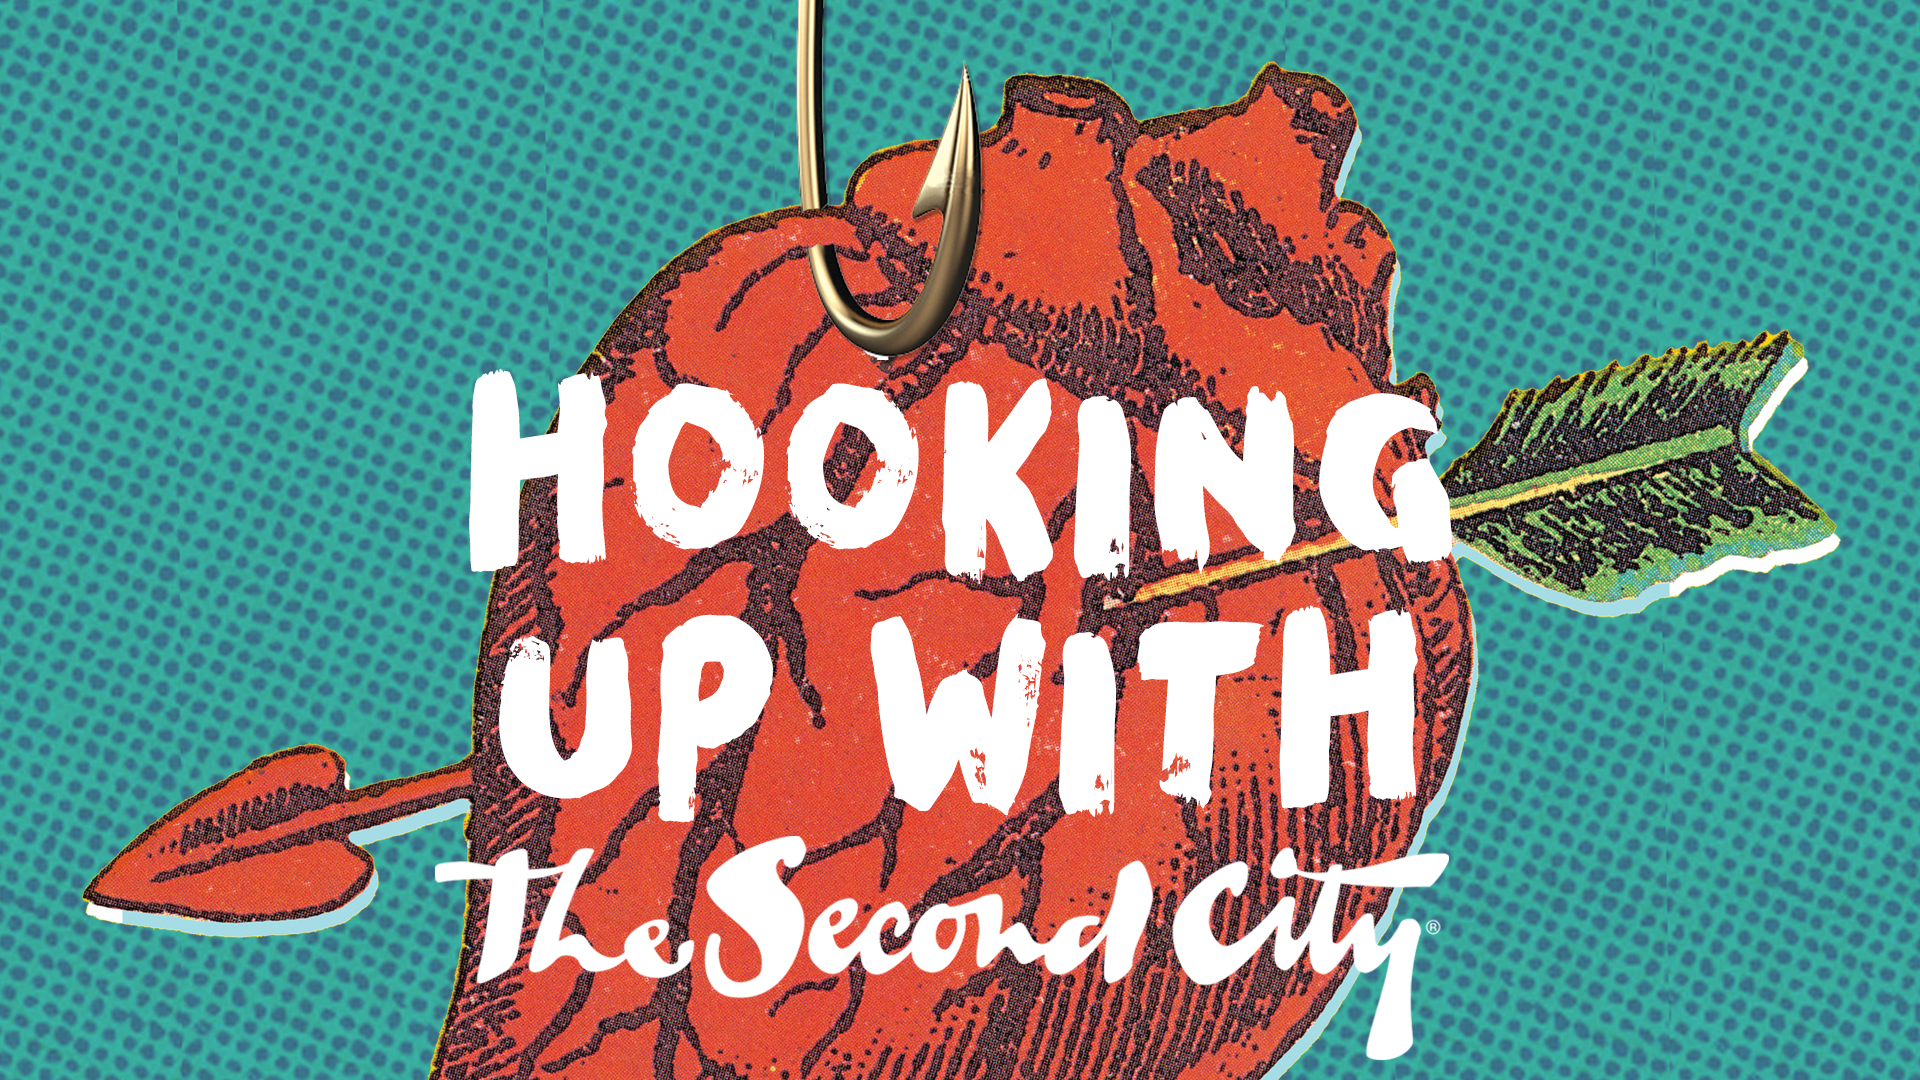 Toronto Comedy Shows Hooking Up with the Second City Heart with an arrow